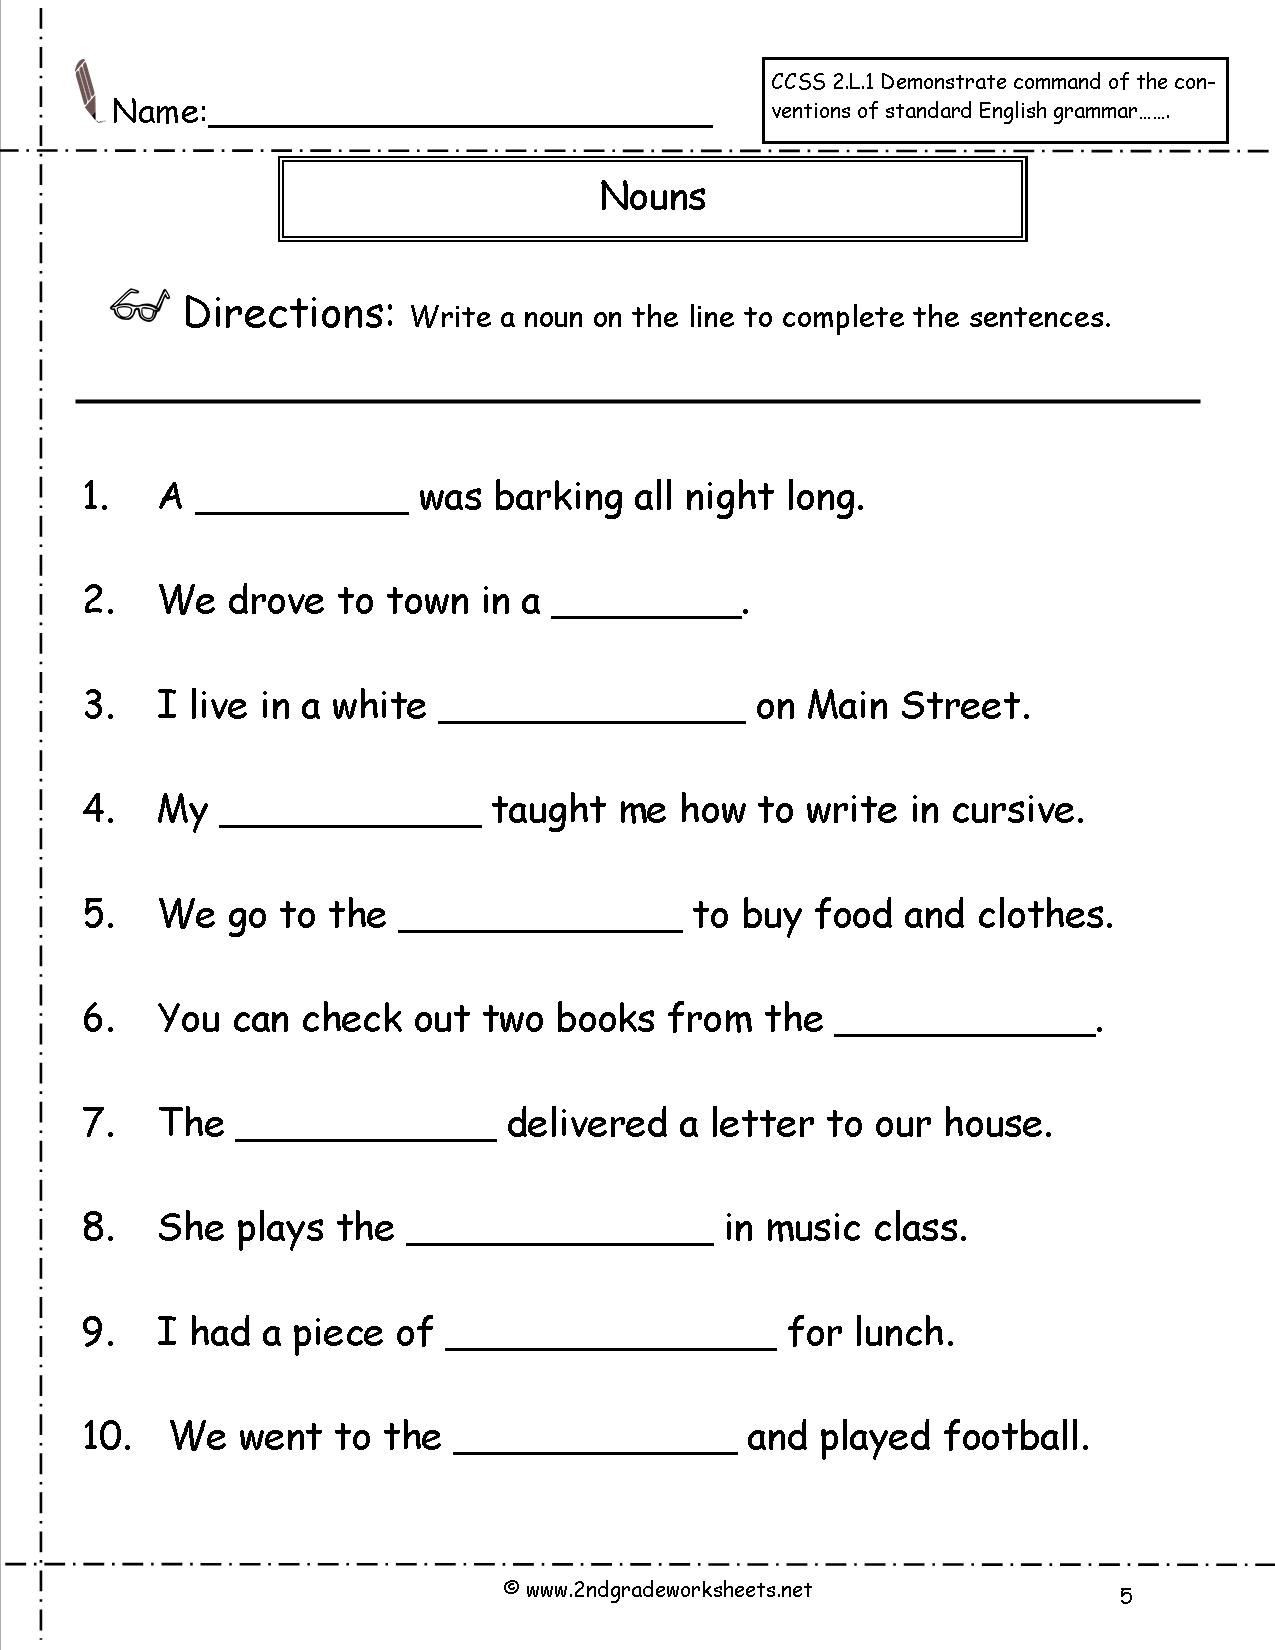 Grammar Worksheet 1st Grade English Grammar Noun Worksheet for Grade 1 Elegant Nouns